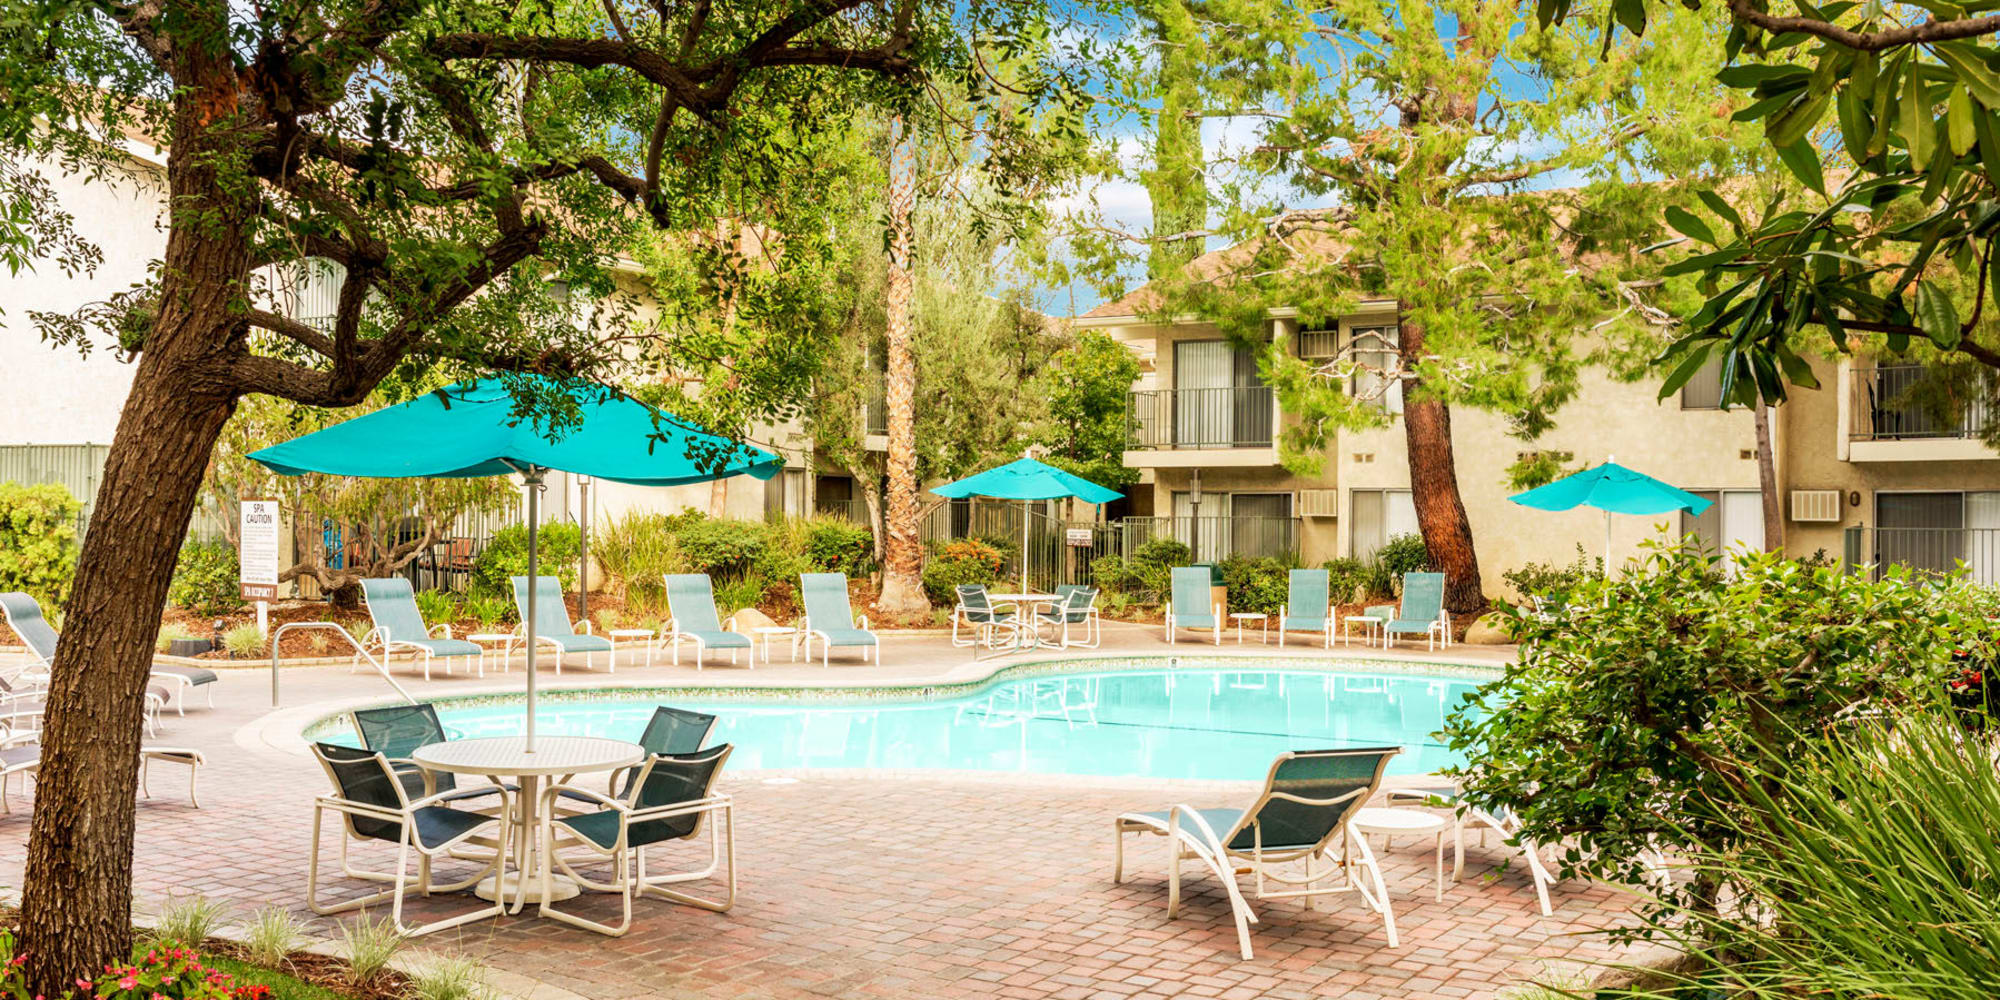 Trees and umbrellas providing shade at the swimming pool area at Village Pointe in Northridge, California